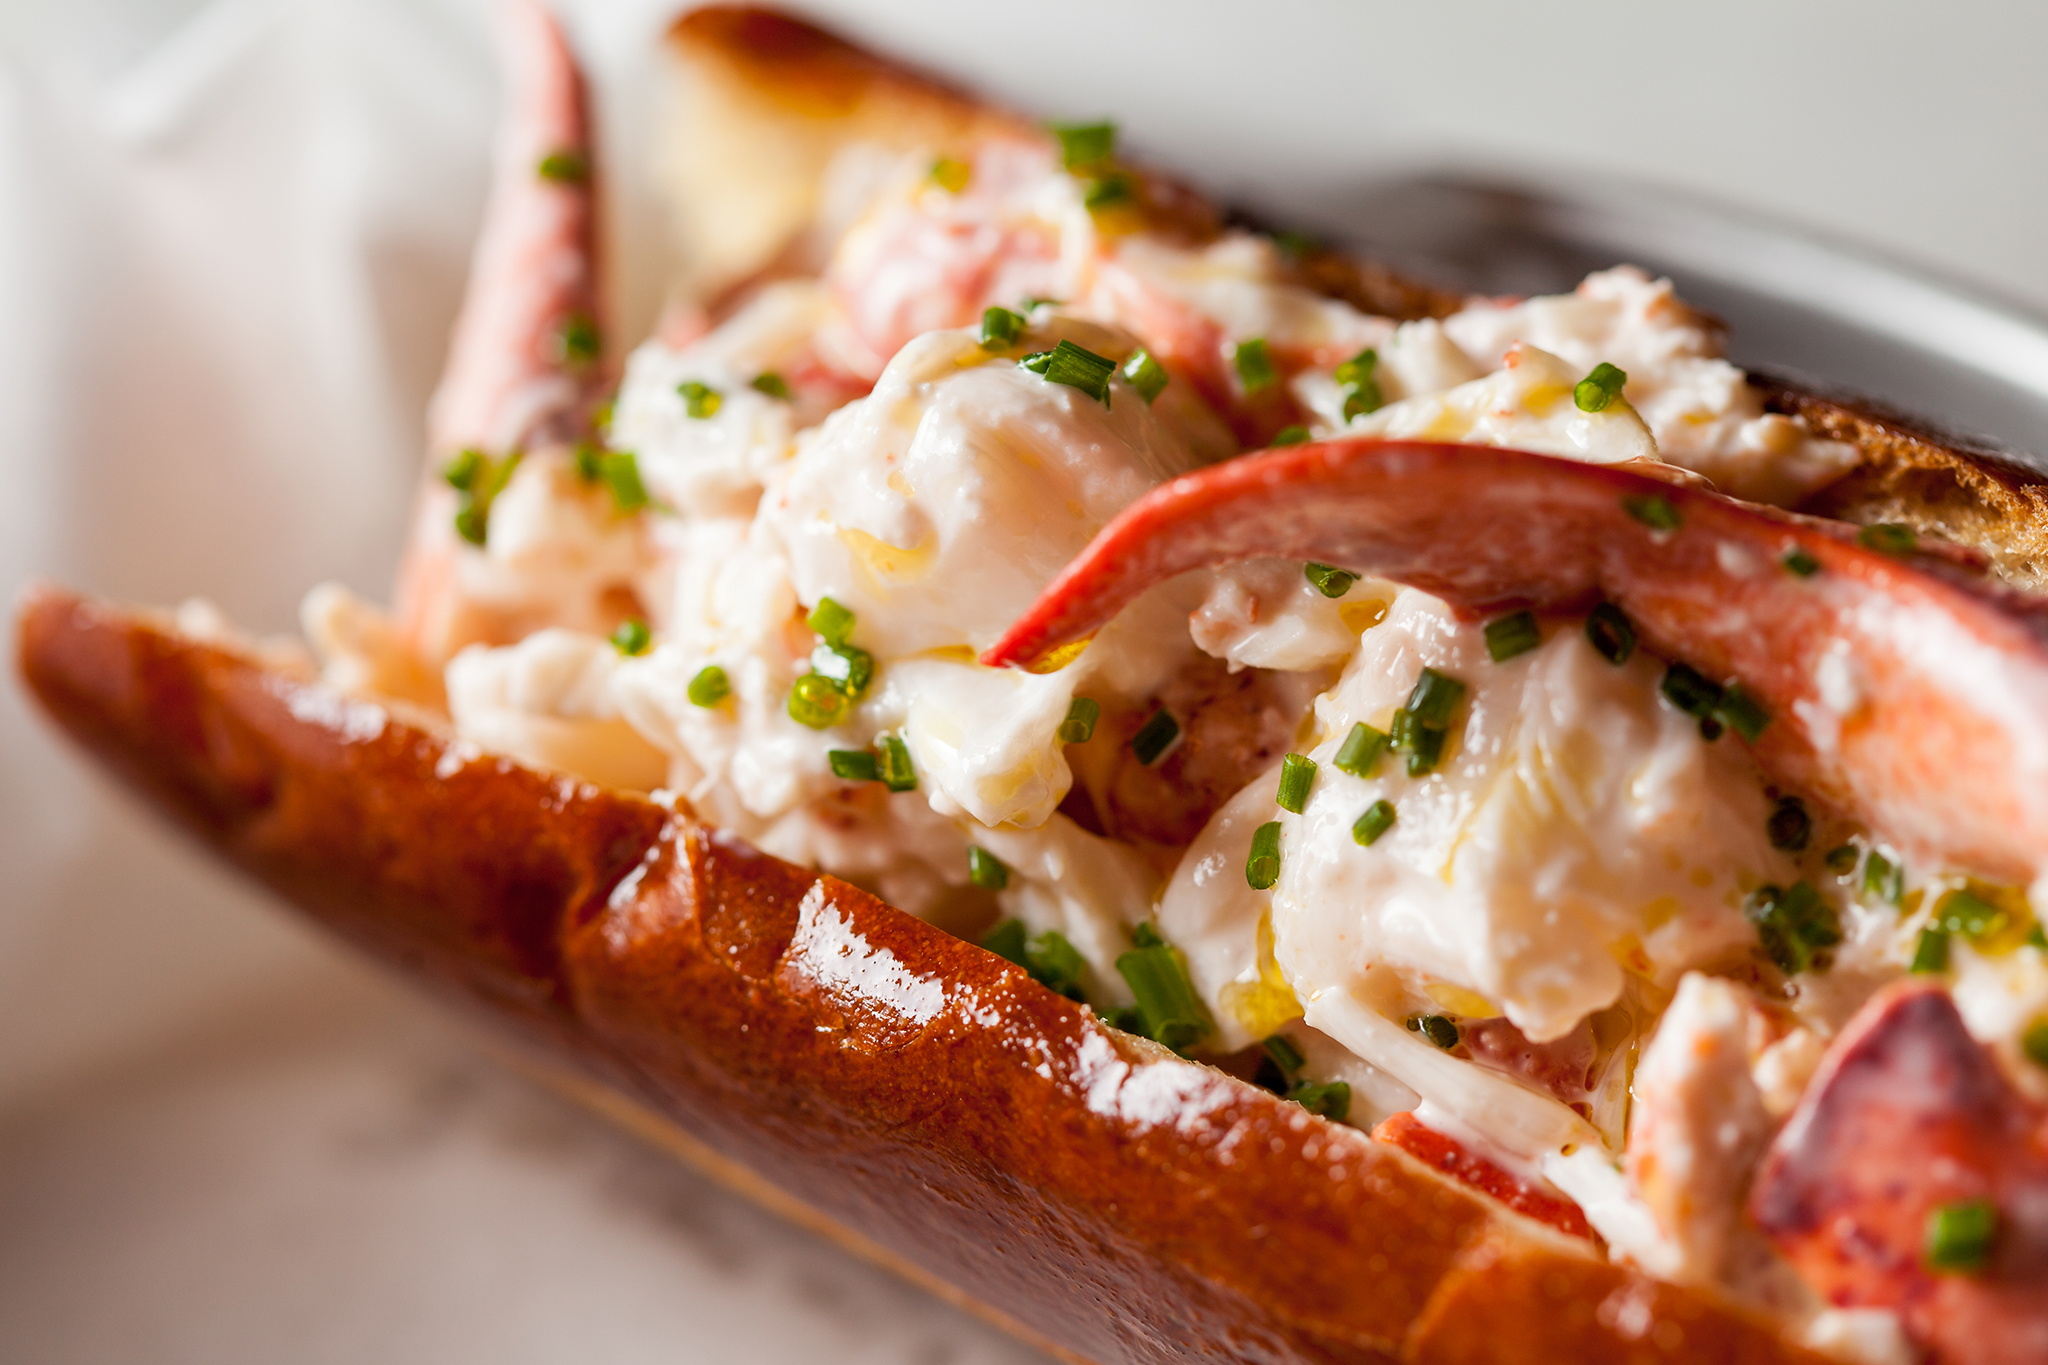 16 best seafood restaurants in boston for oh so good fish